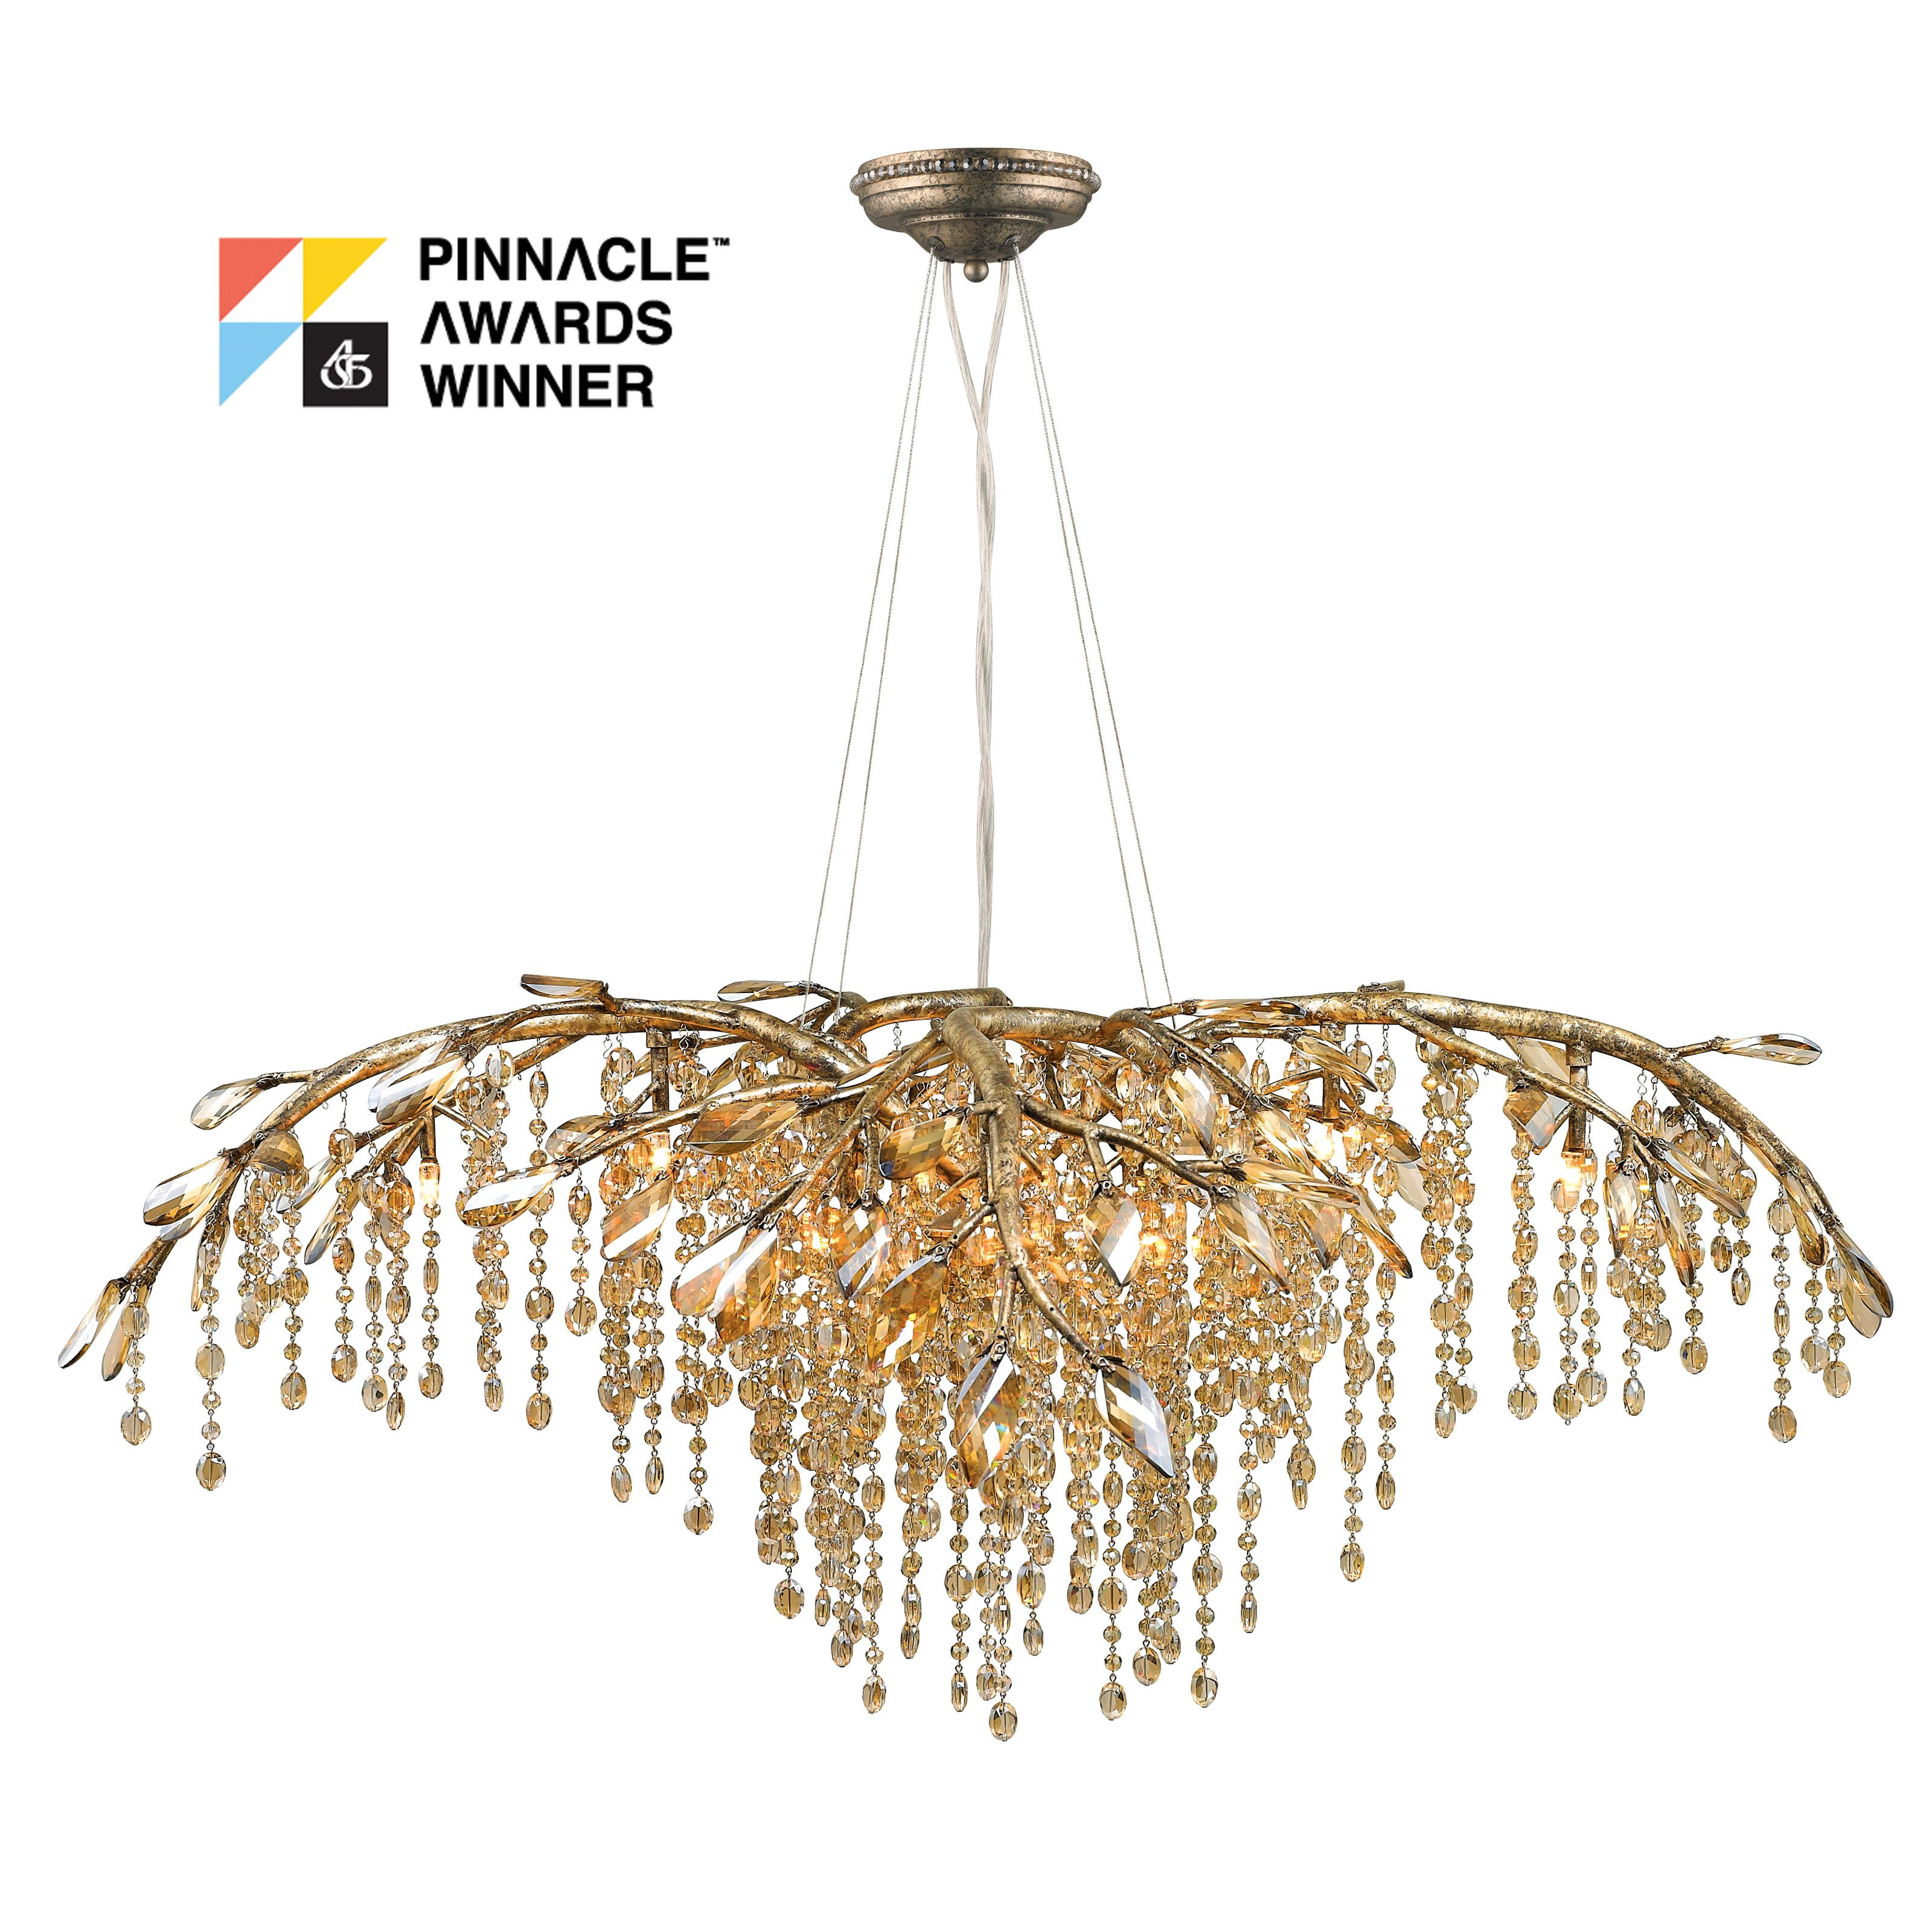 golden lighting chandelier. Golden Lighting 9903-12 MG Autumn Twilight Mystic Gold 12 Light Chandelier On Sale Now